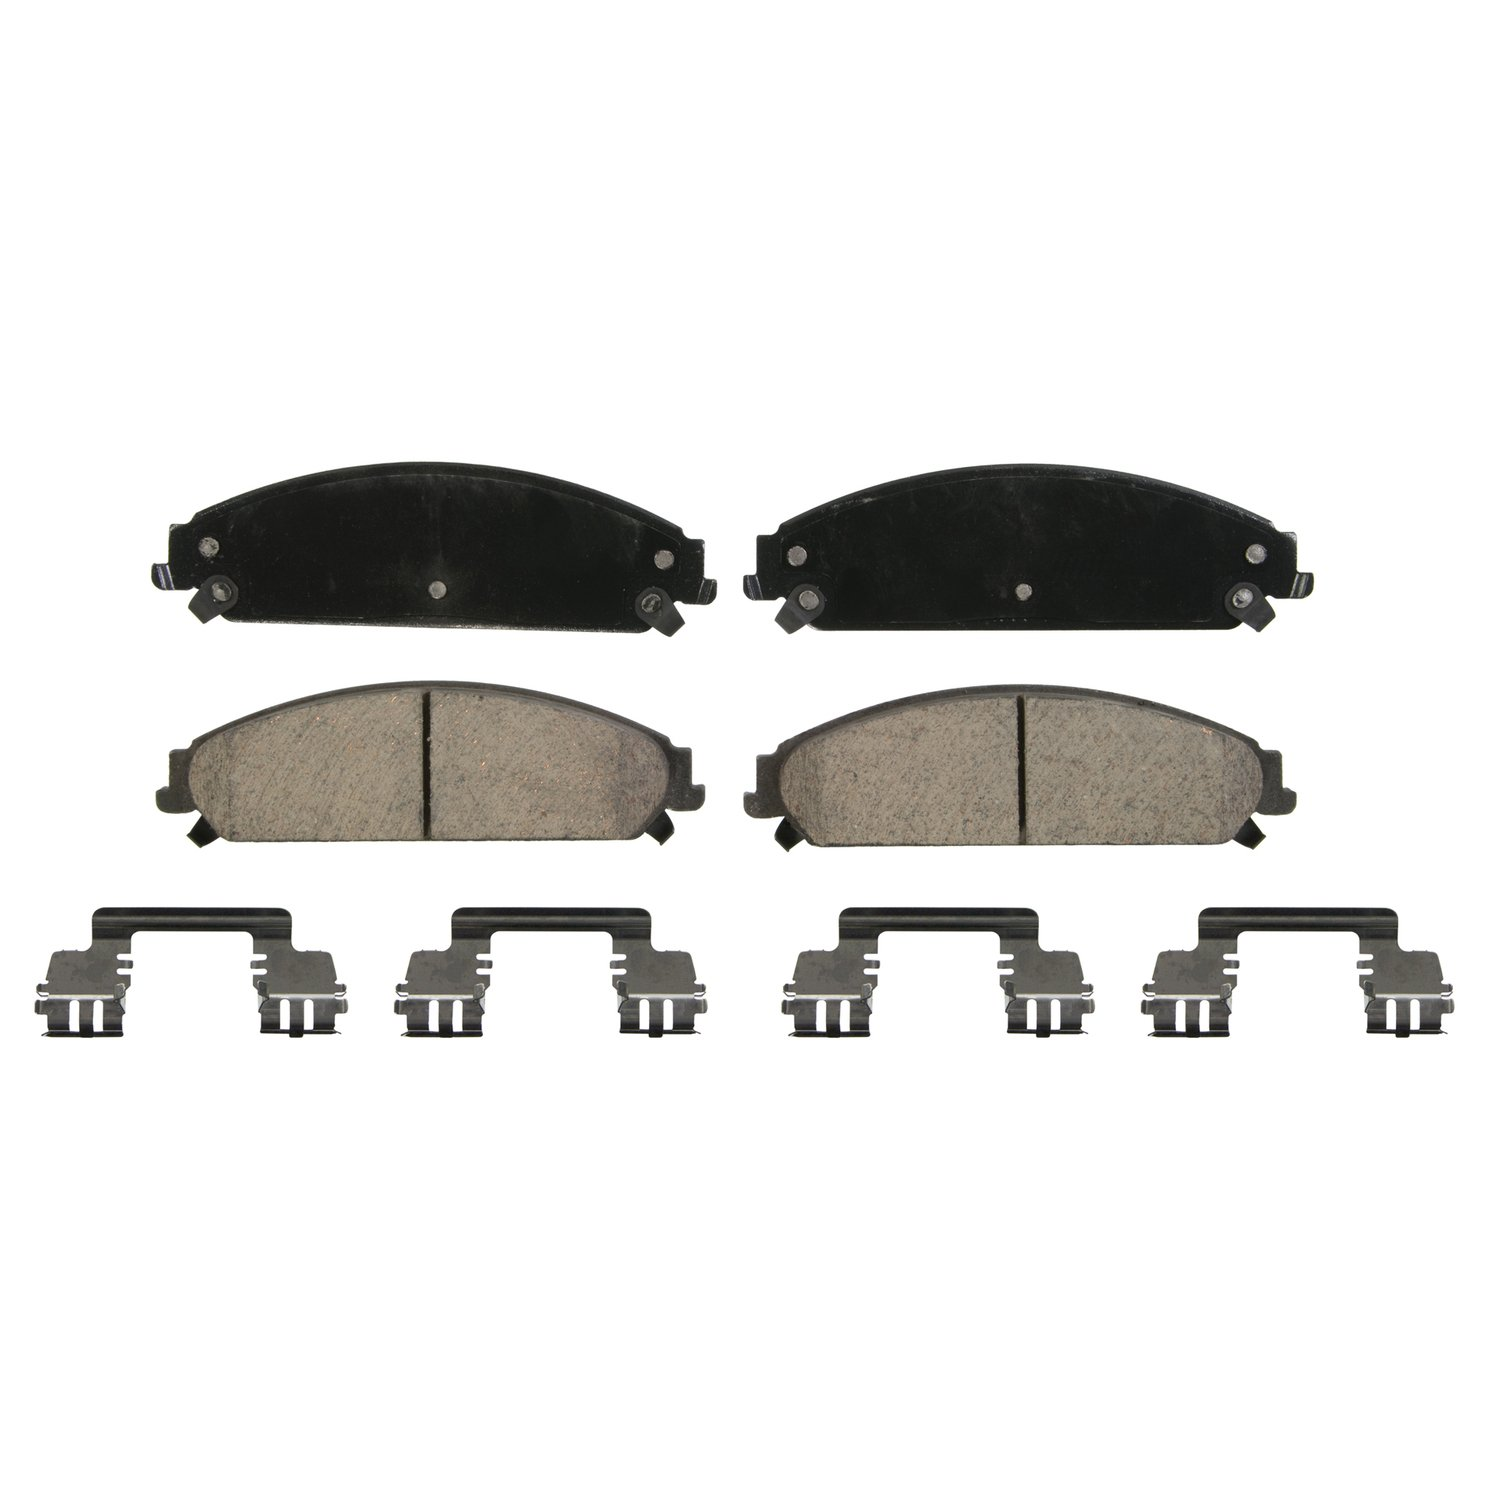 Front Wagner Brake Wagner QuickStop ZD1058 Ceramic Disc Pad Set Includes Pad Installation Hardware